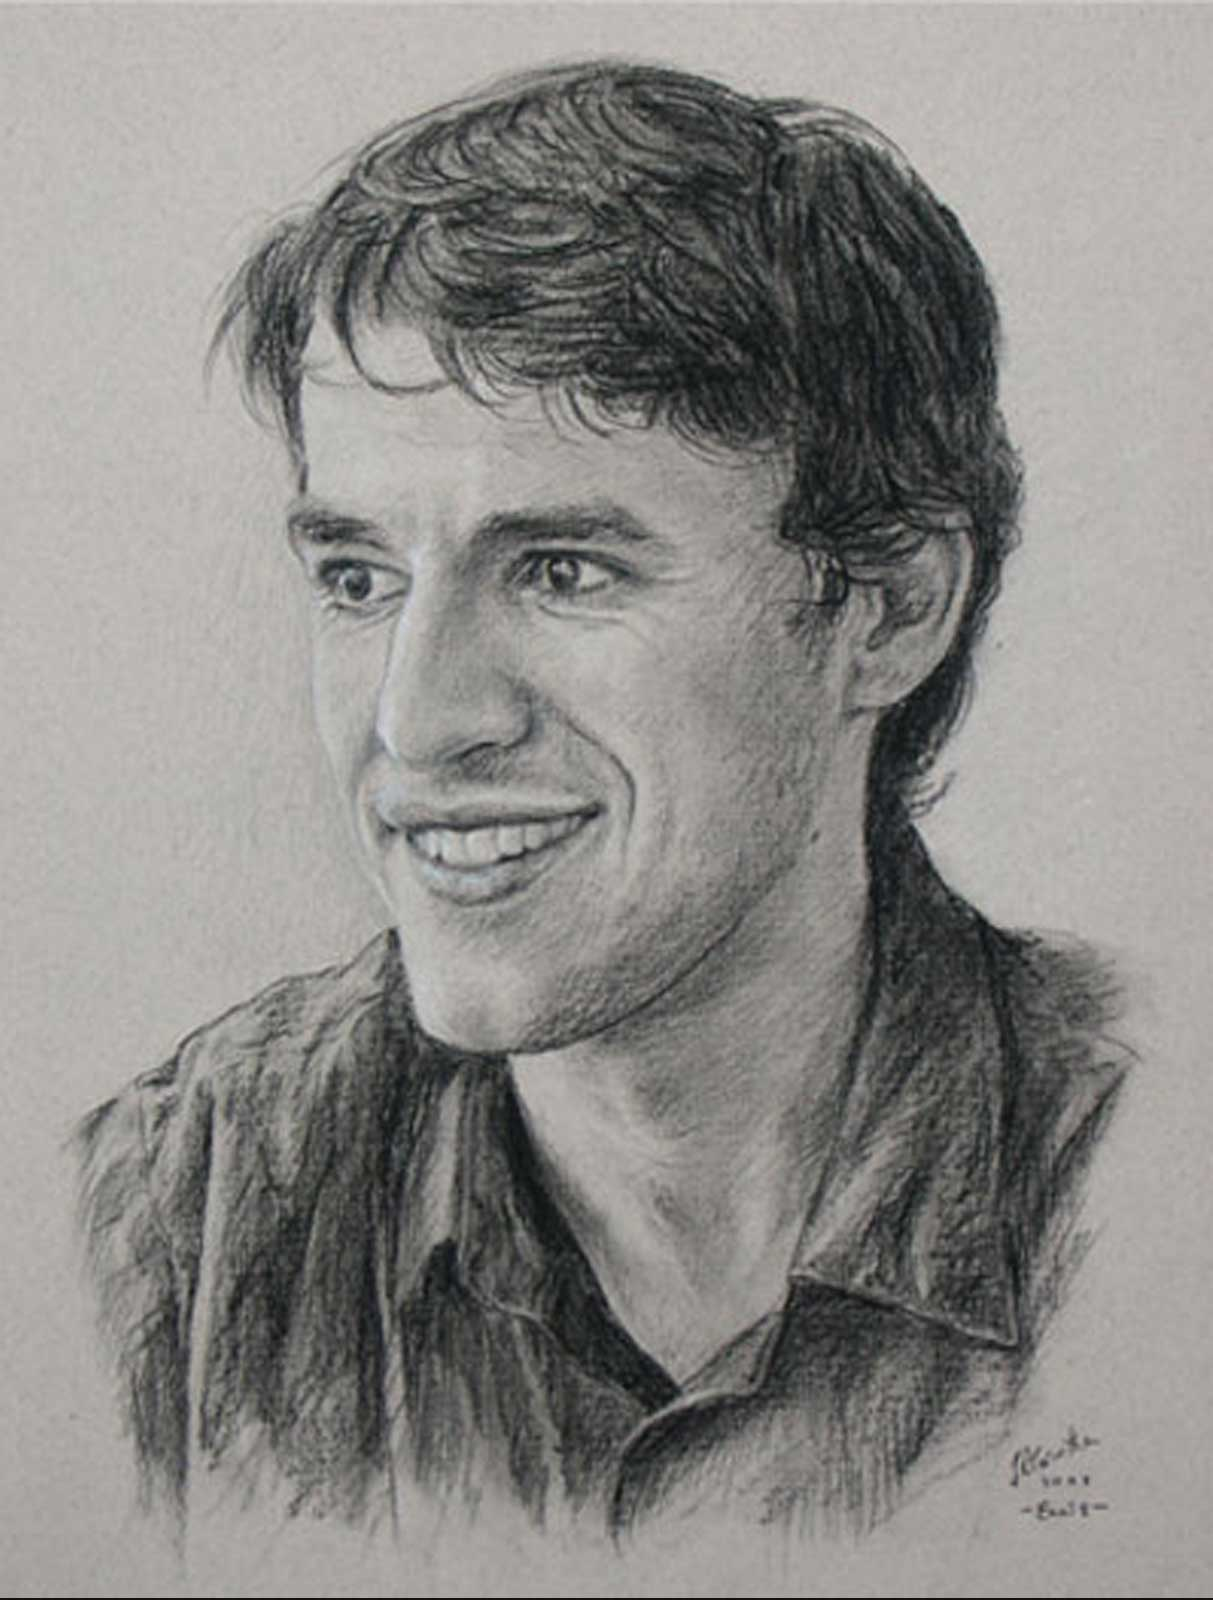 Male portrait drawing on paper